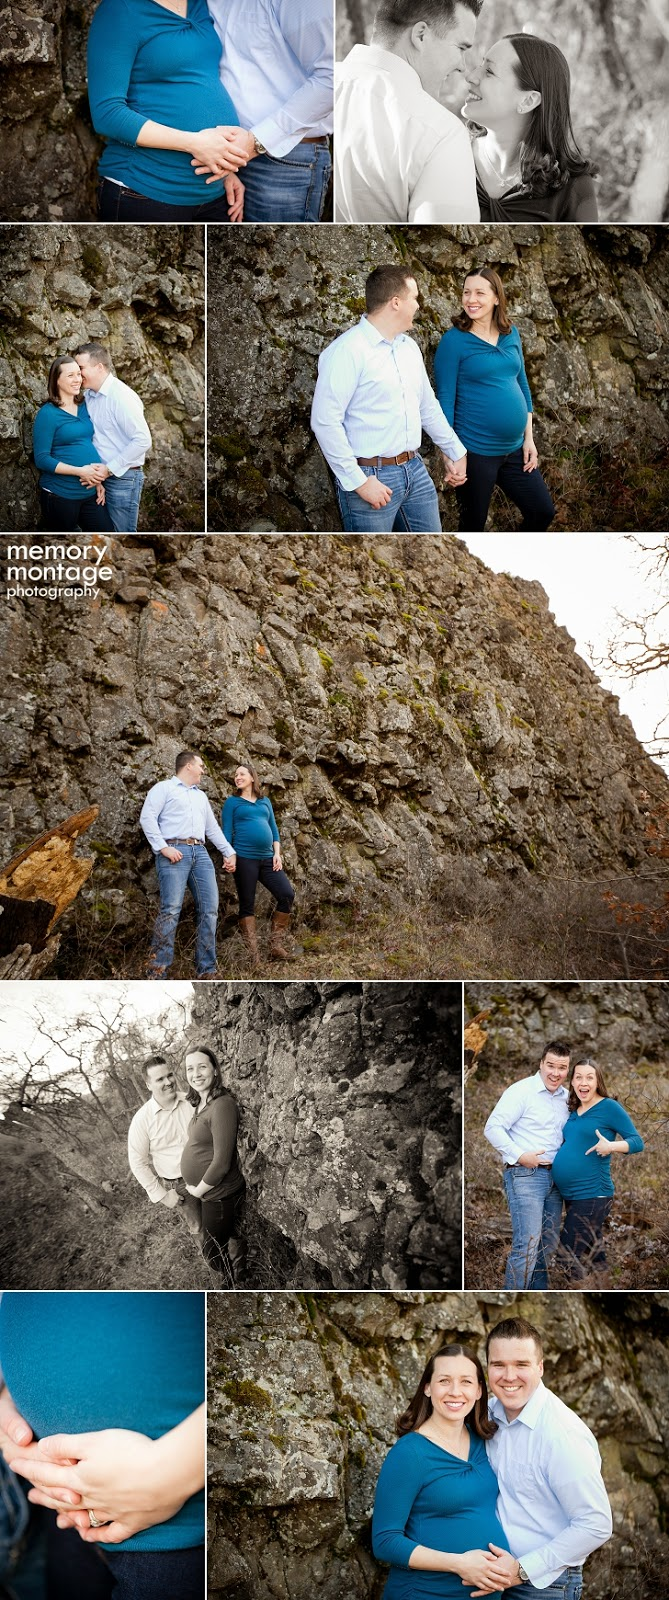 Yakima Area Family Photographer Memory Montage Maternity Session